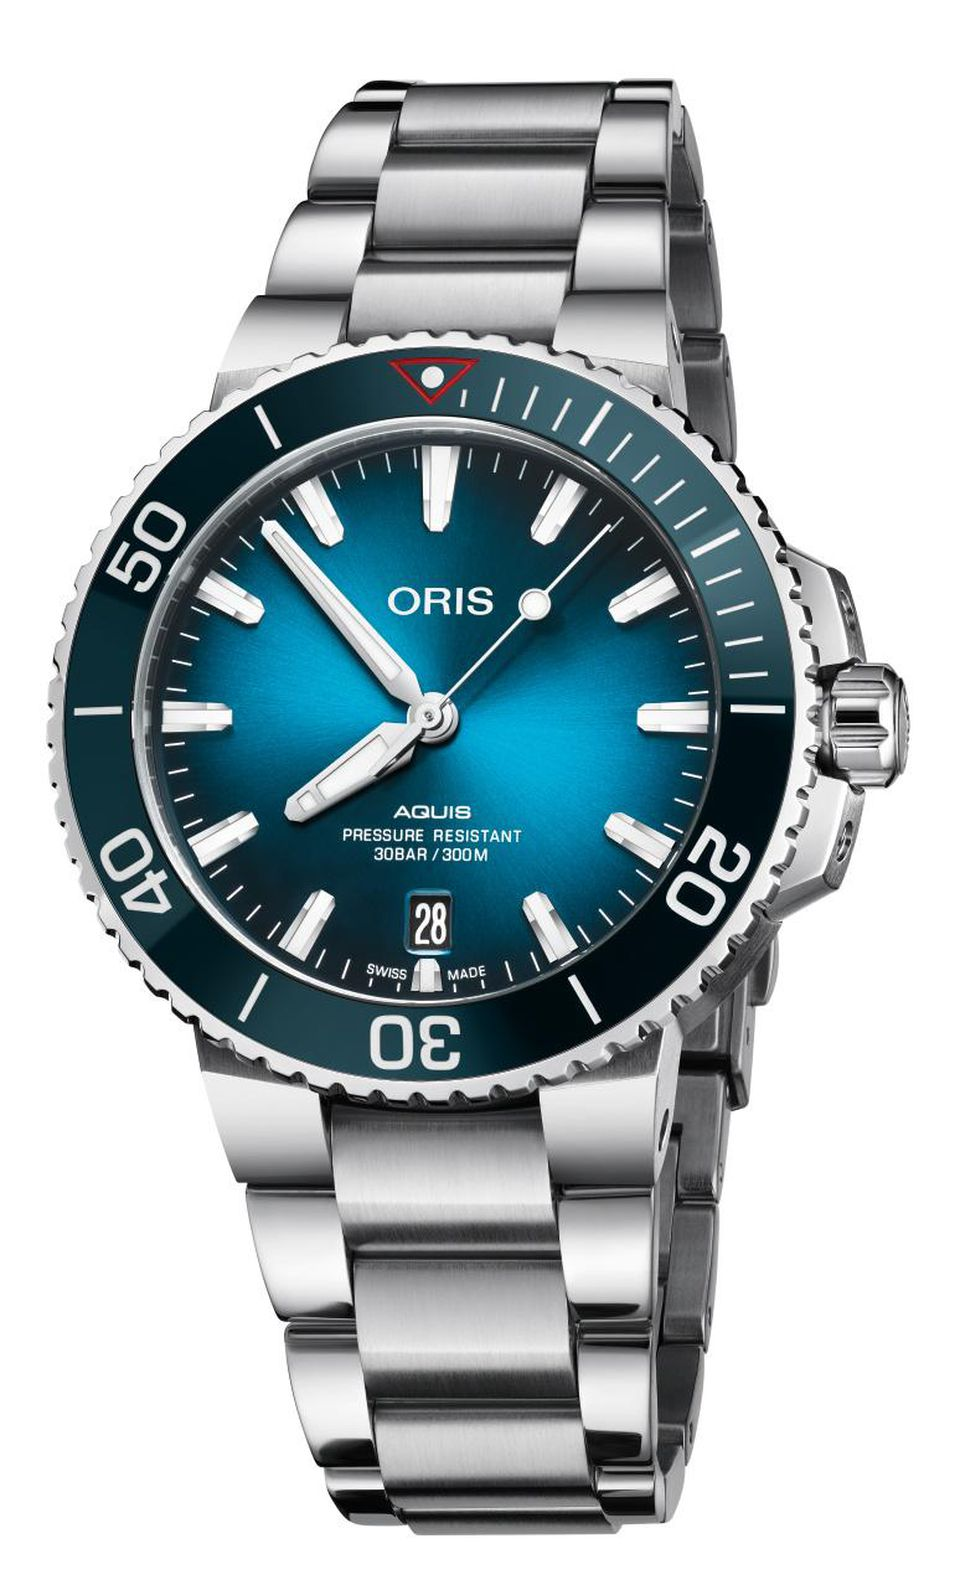 https _blogs-images.forbes.com_robertanaas_files_2019_06_01-733-7732-4185-Set-Oris-Clean-Ocean-Limited-Edition_LowRes_9640.jpg